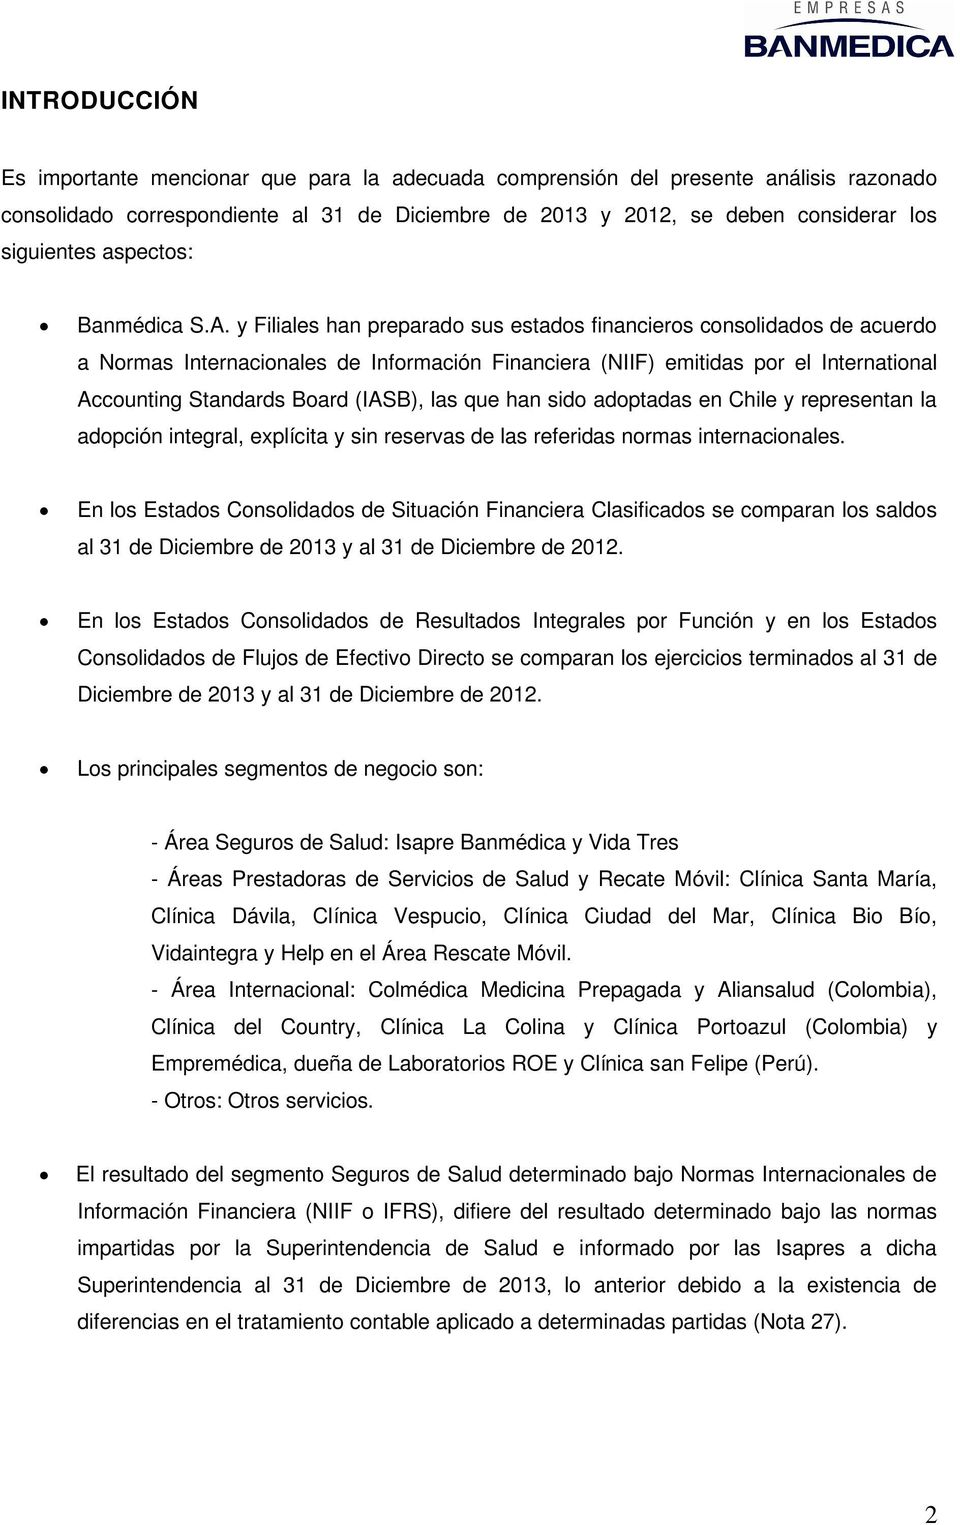 y Filiales han preparado sus estados financieros consolidados de acuerdo a Normas Internacionales de Información Financiera (NIIF) emitidas por el International Accounting Standards Board (IASB), las